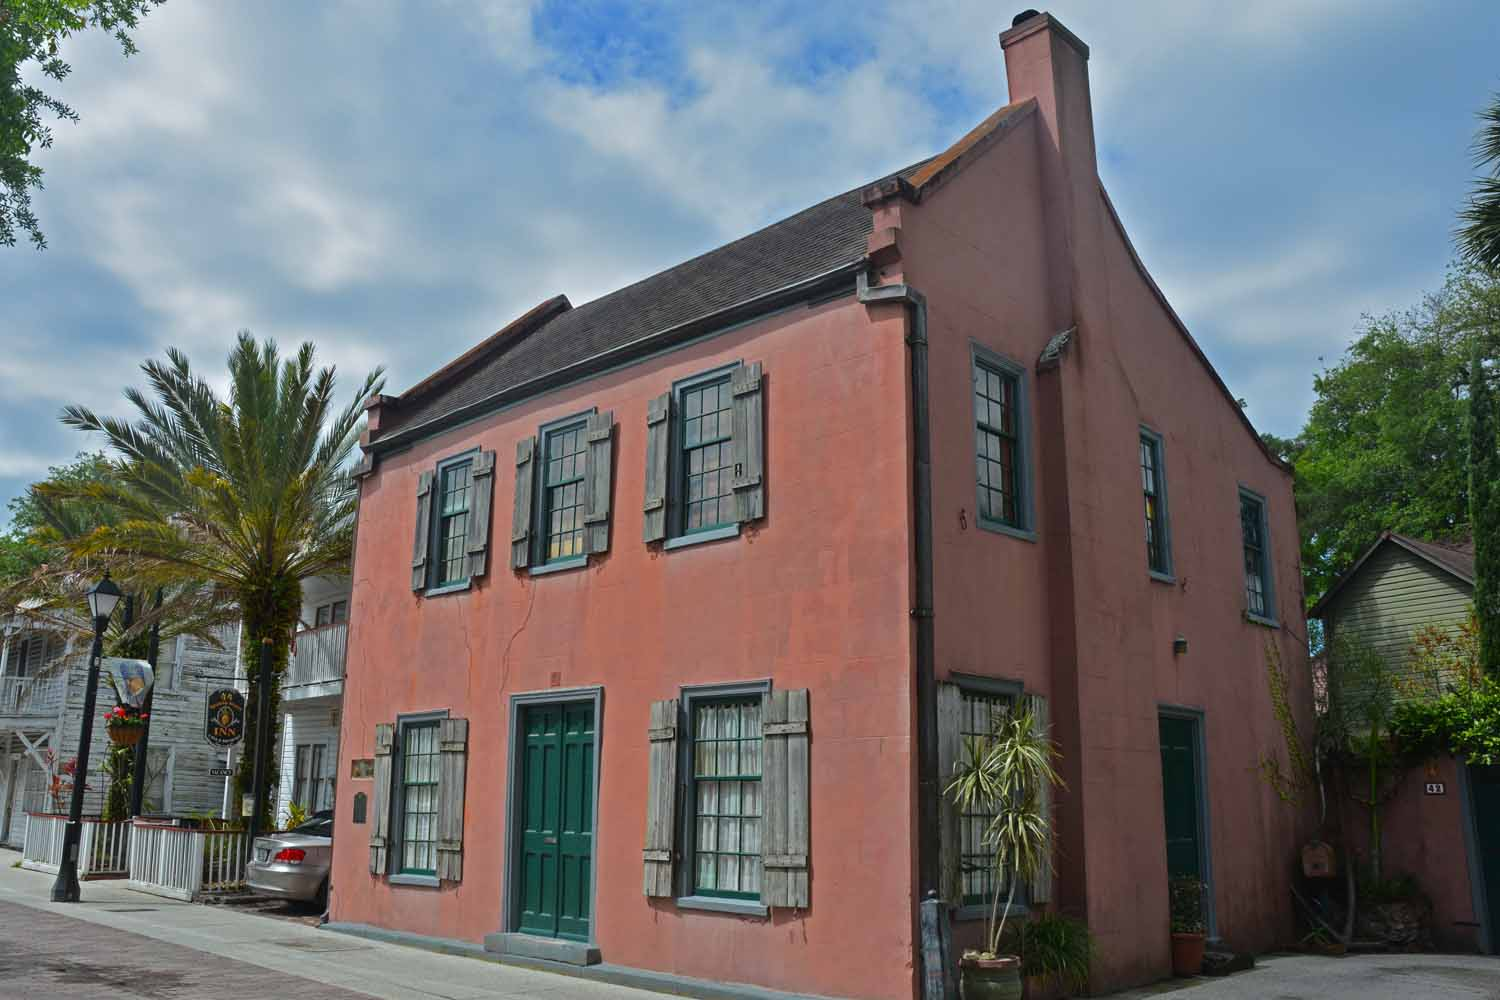 Just loved the colorful houses in Savannah